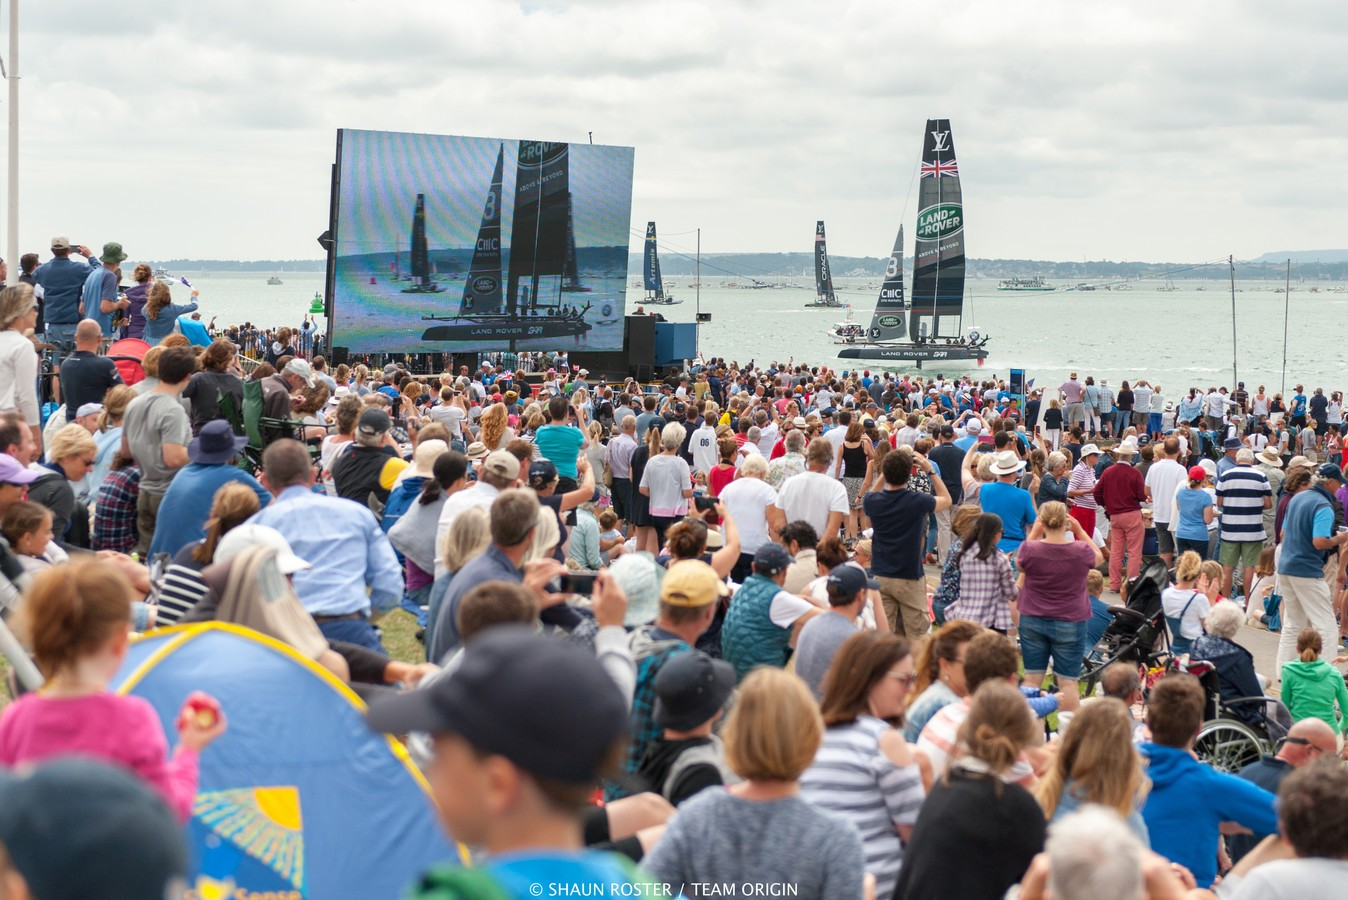 Ainslie wins 2016 Portsmouth America's Cup event